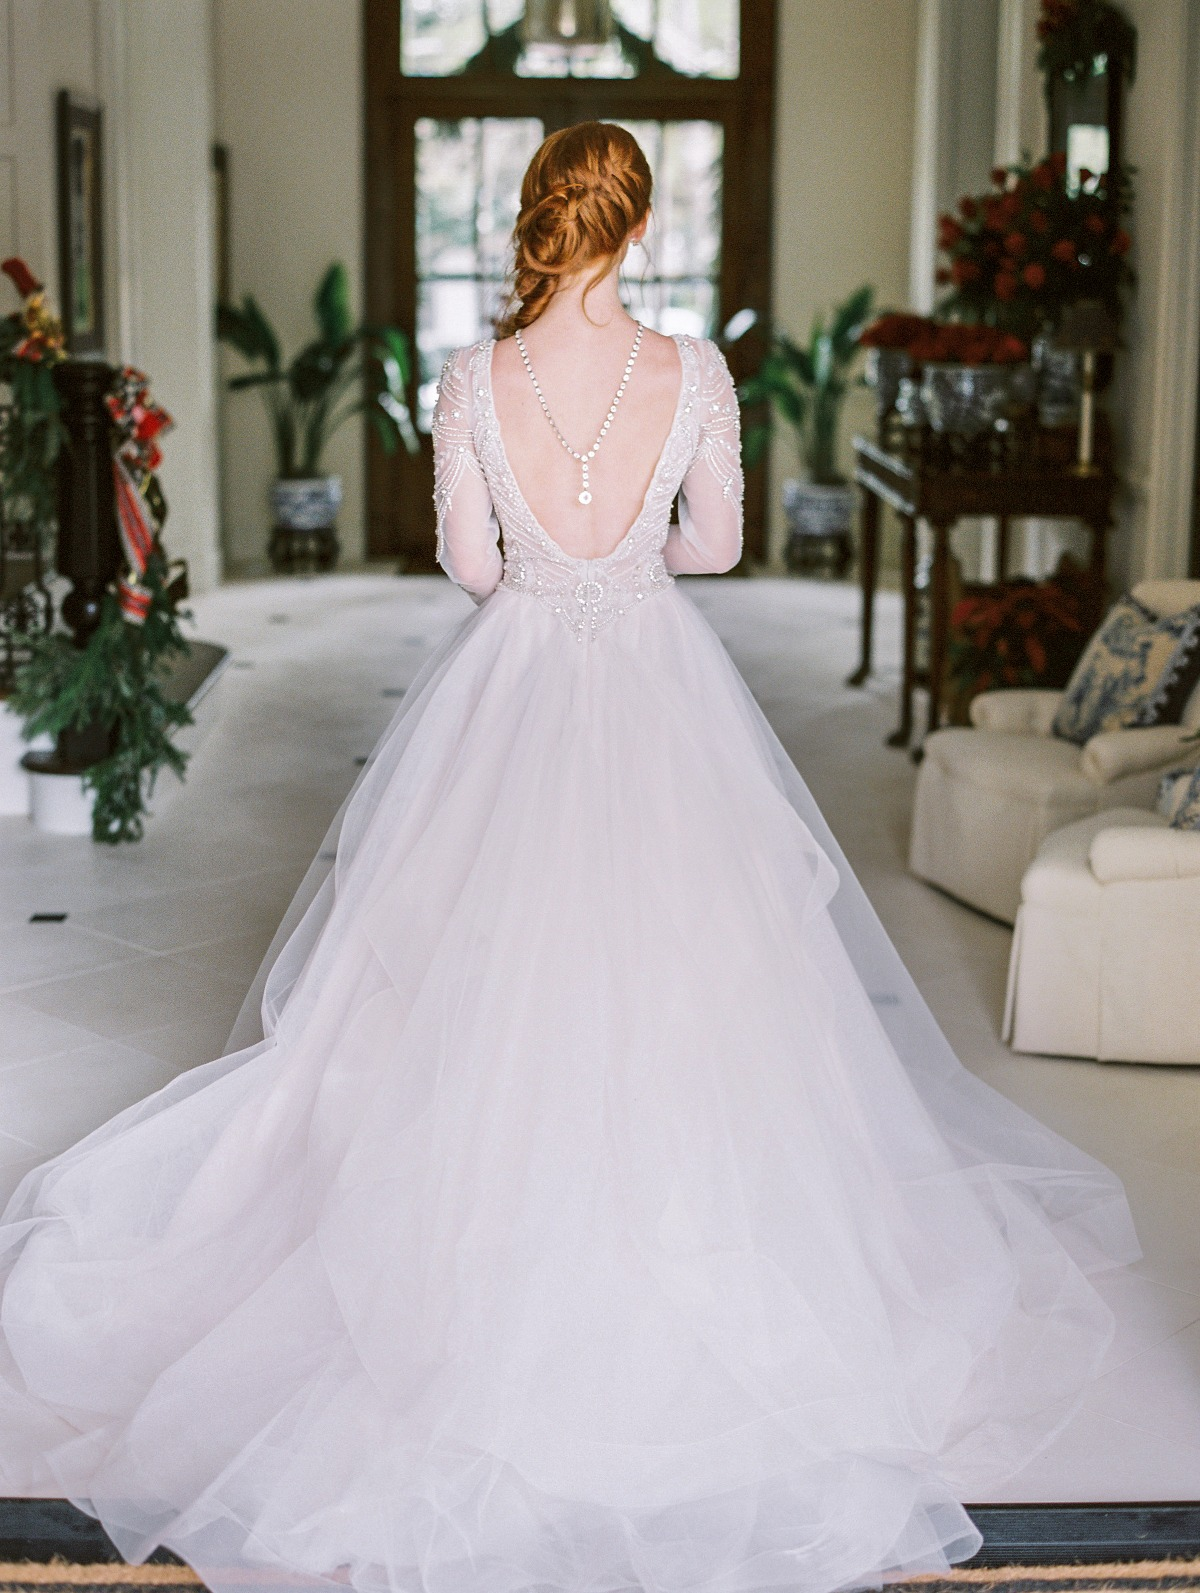 The Amalia Carrara Eve of Milady wedding dress